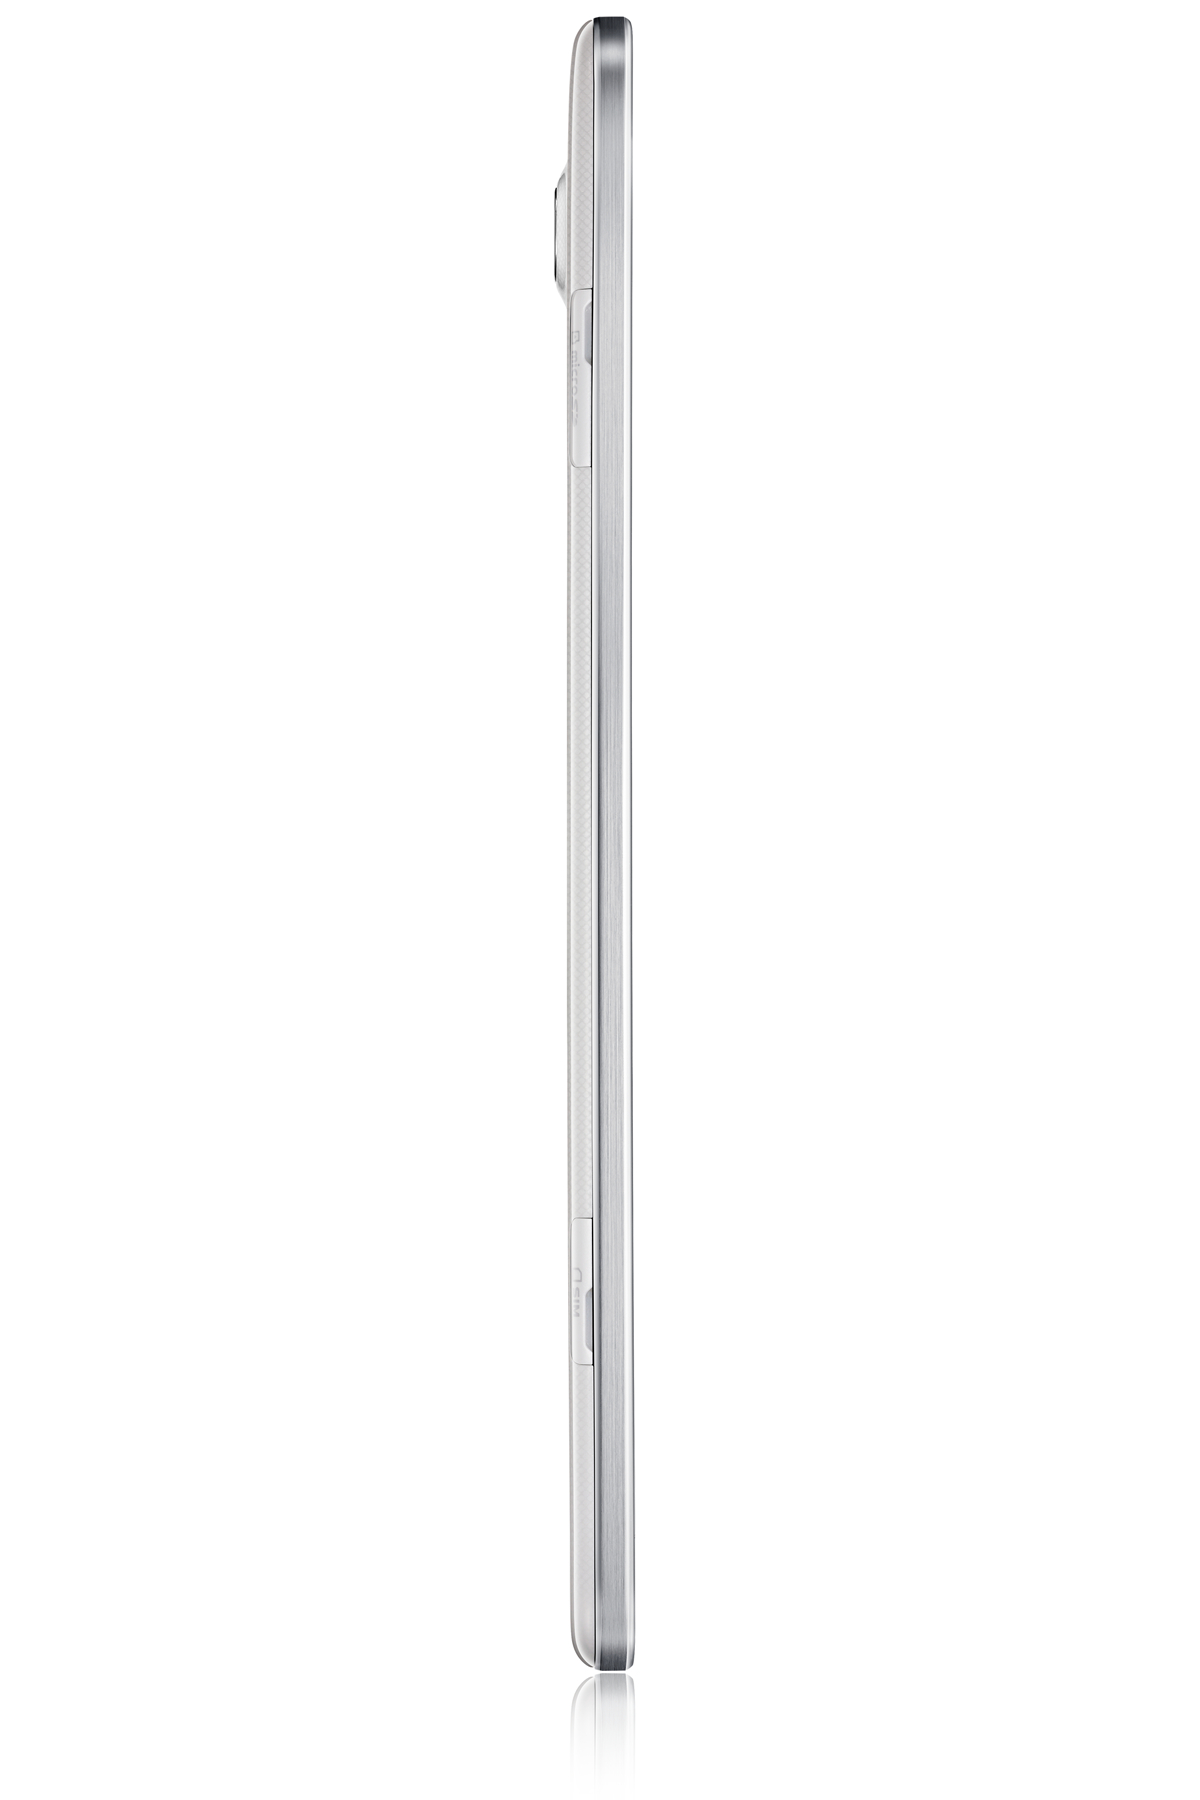 Samsung Galaxy Note 8.0 3G 16Gb N5100 (White)